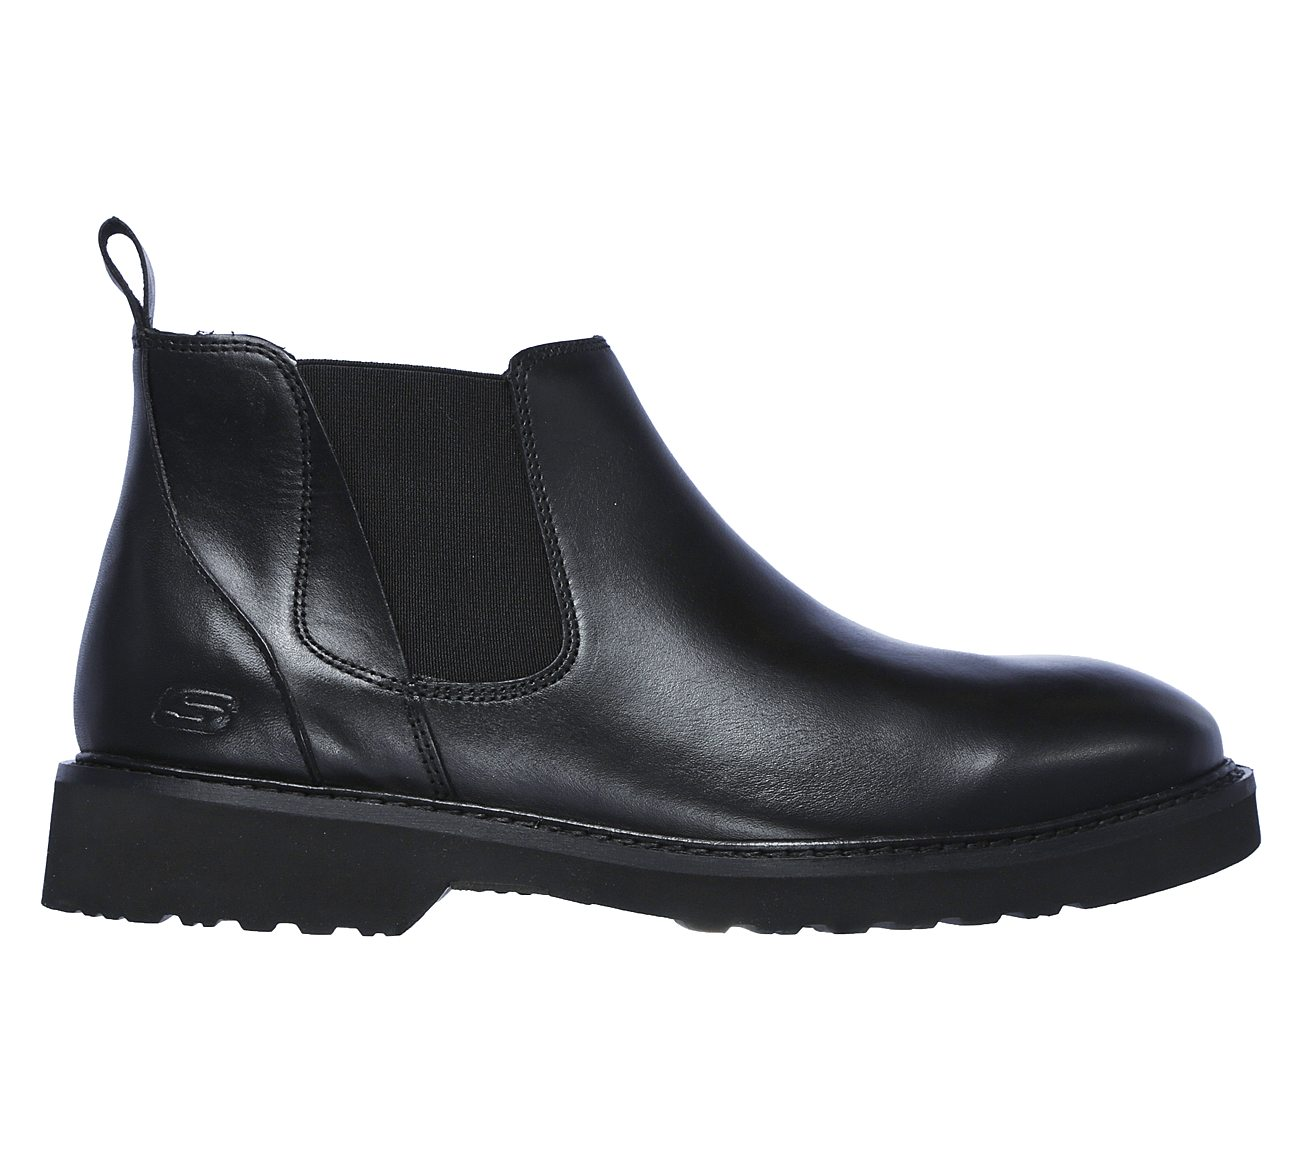 Buy SKECHERS Selano Besson Exclusives Shoes only $95.00